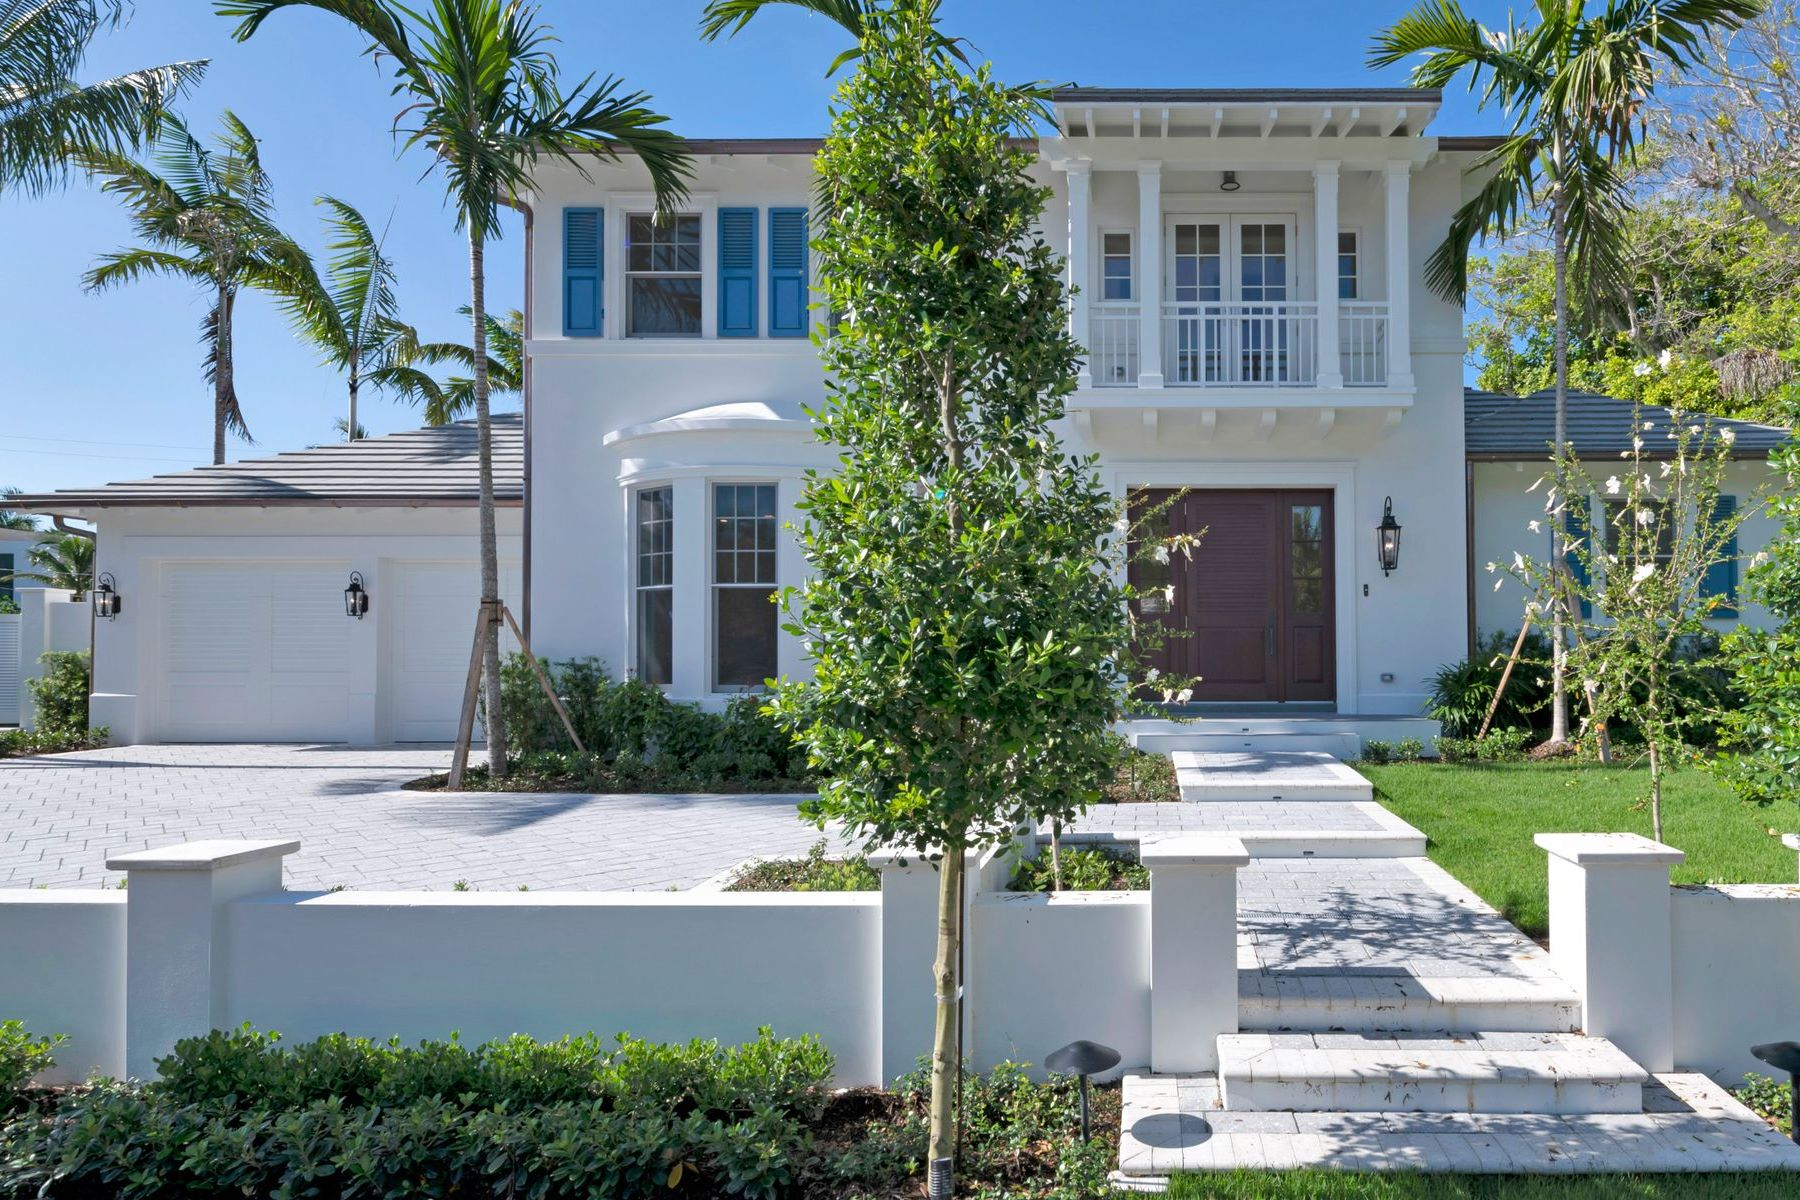 Single Family Homes için Satış at Palm Beach New Construction 256 Fairview Rd, Palm Beach, Florida 33480 Amerika Birleşik Devletleri